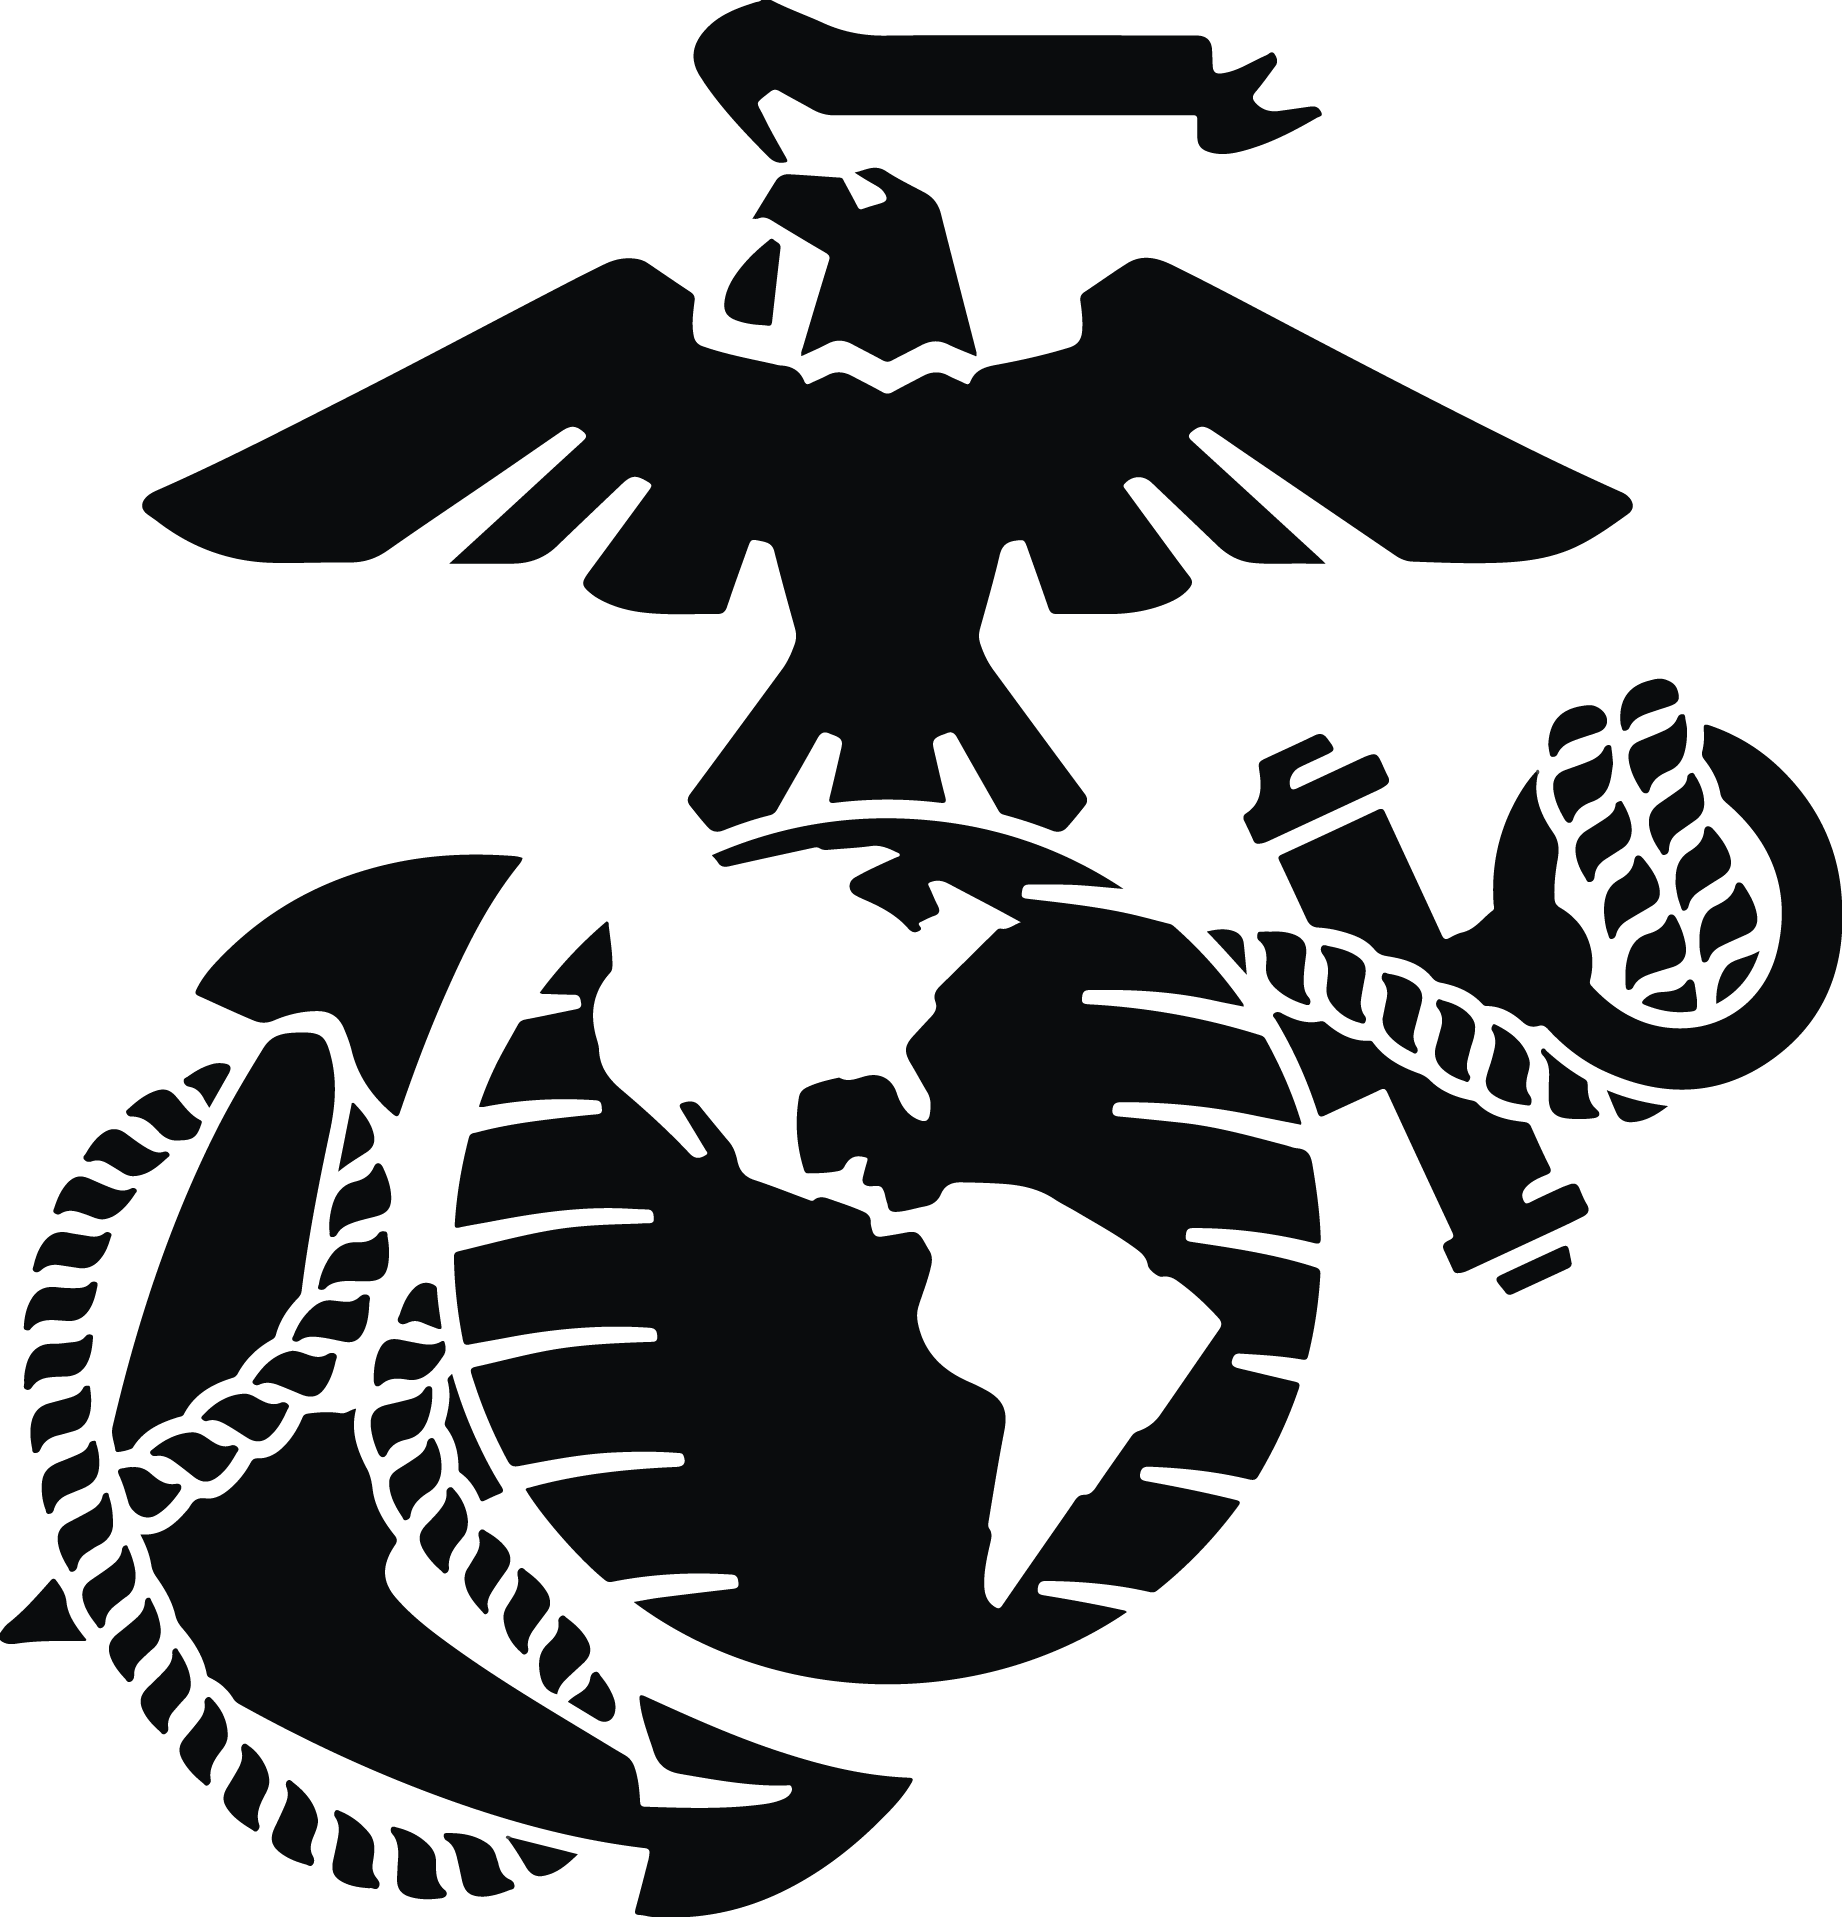 United States Marines Eagle, Globe, and Anchor